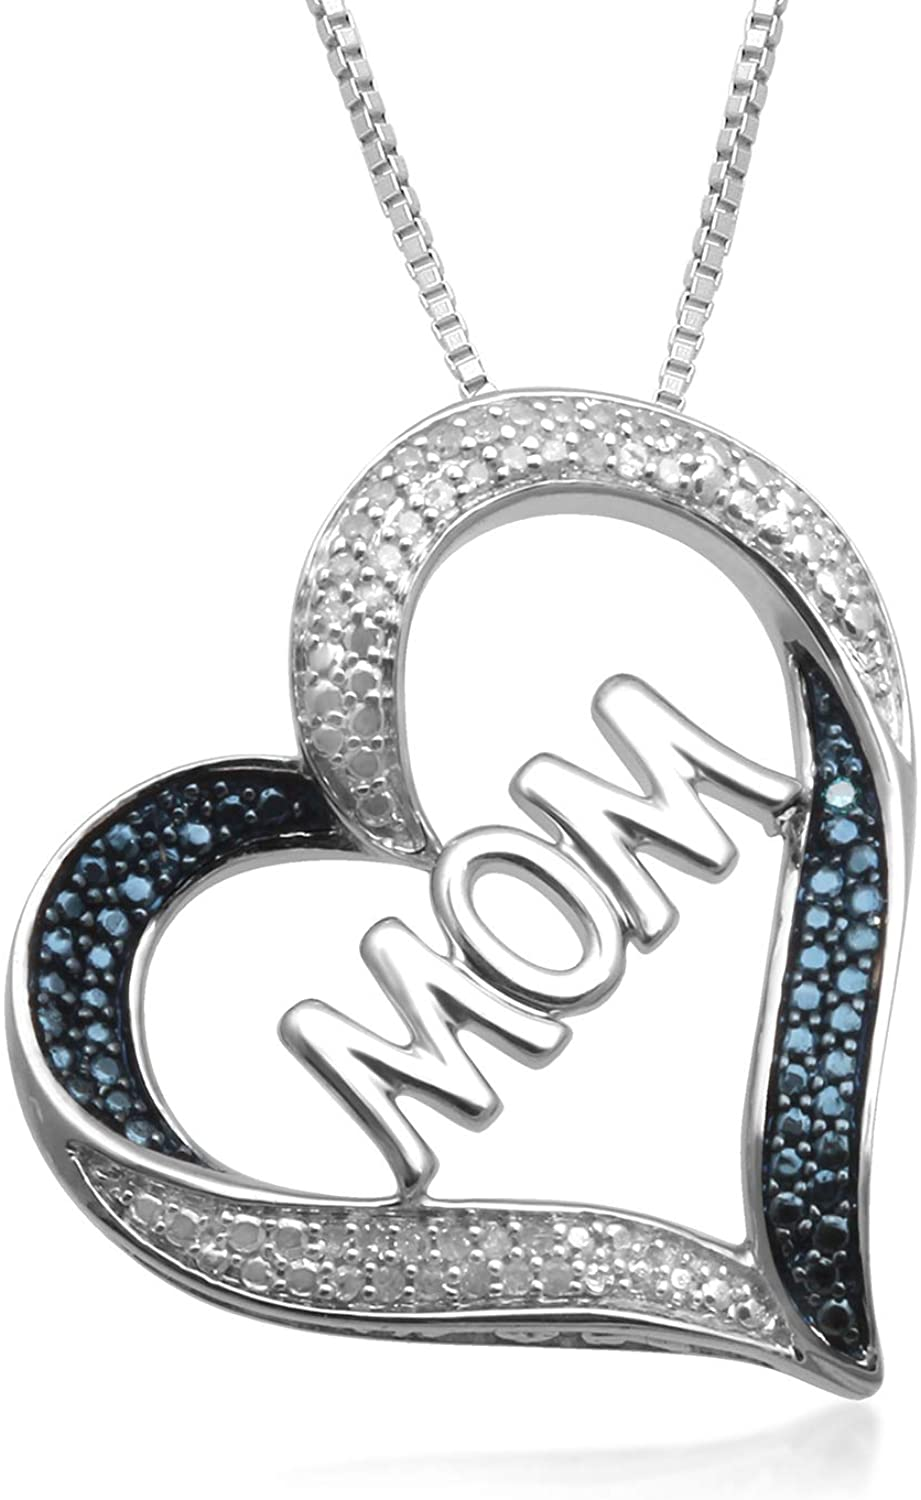 Jewelii Sterling Silver 1/10cttw Blue and White Diamond MOM Cut Out Tilted Heart Pendant Necklace, 18 Box Chain